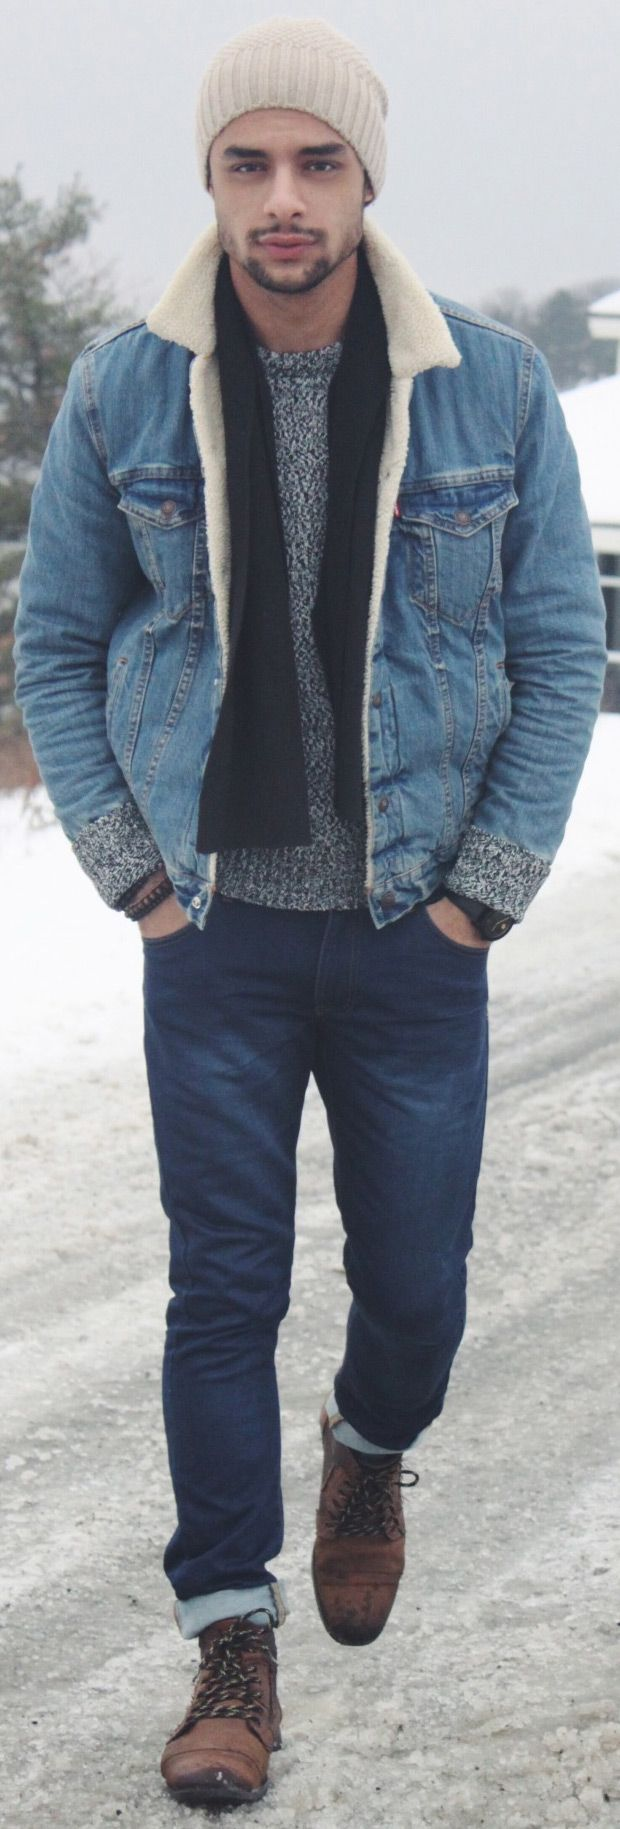 Winter mens men s fall fall autumn pre fall denim winter jeans - 44 Best Men S Winter Outfits Images On Pinterest Men Fashion Men Winter Fashion And Mens Winter